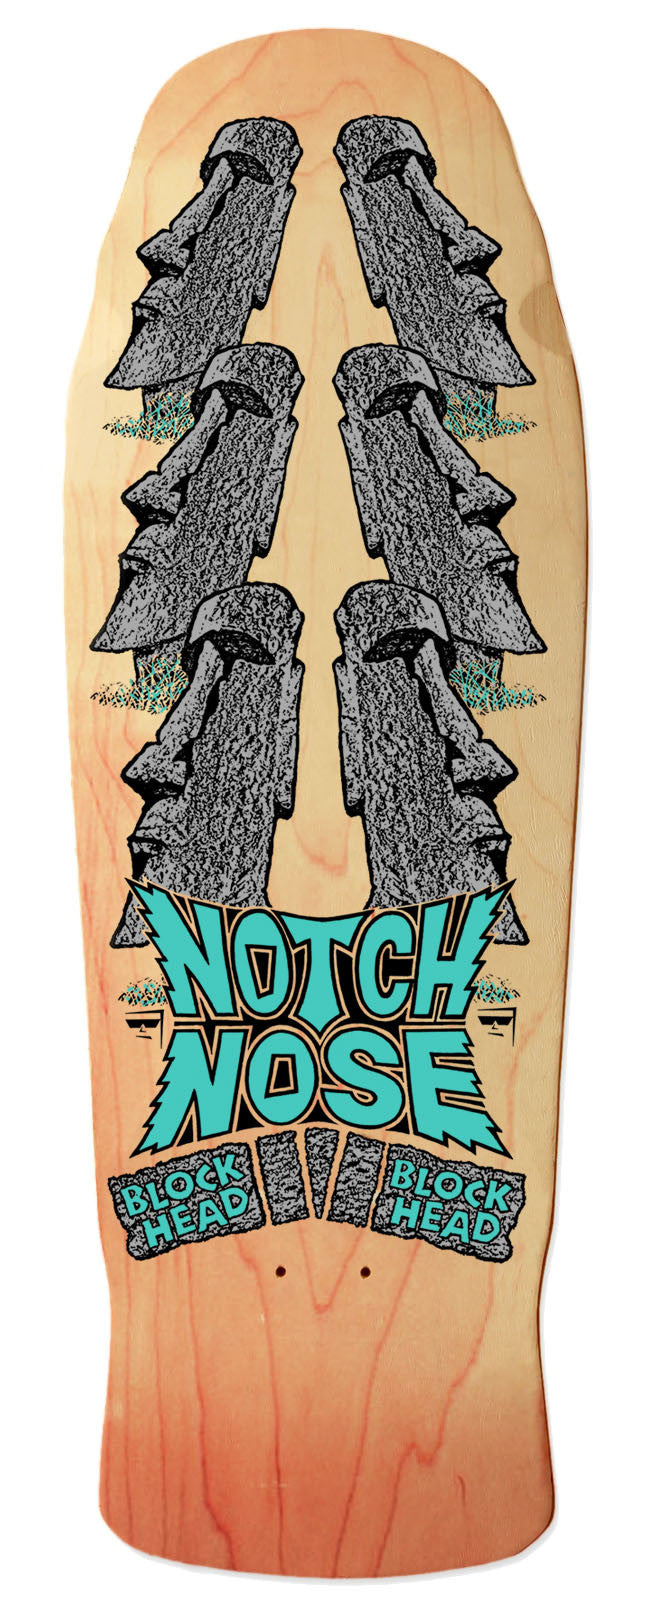 Notch Nose - SOLD OUT